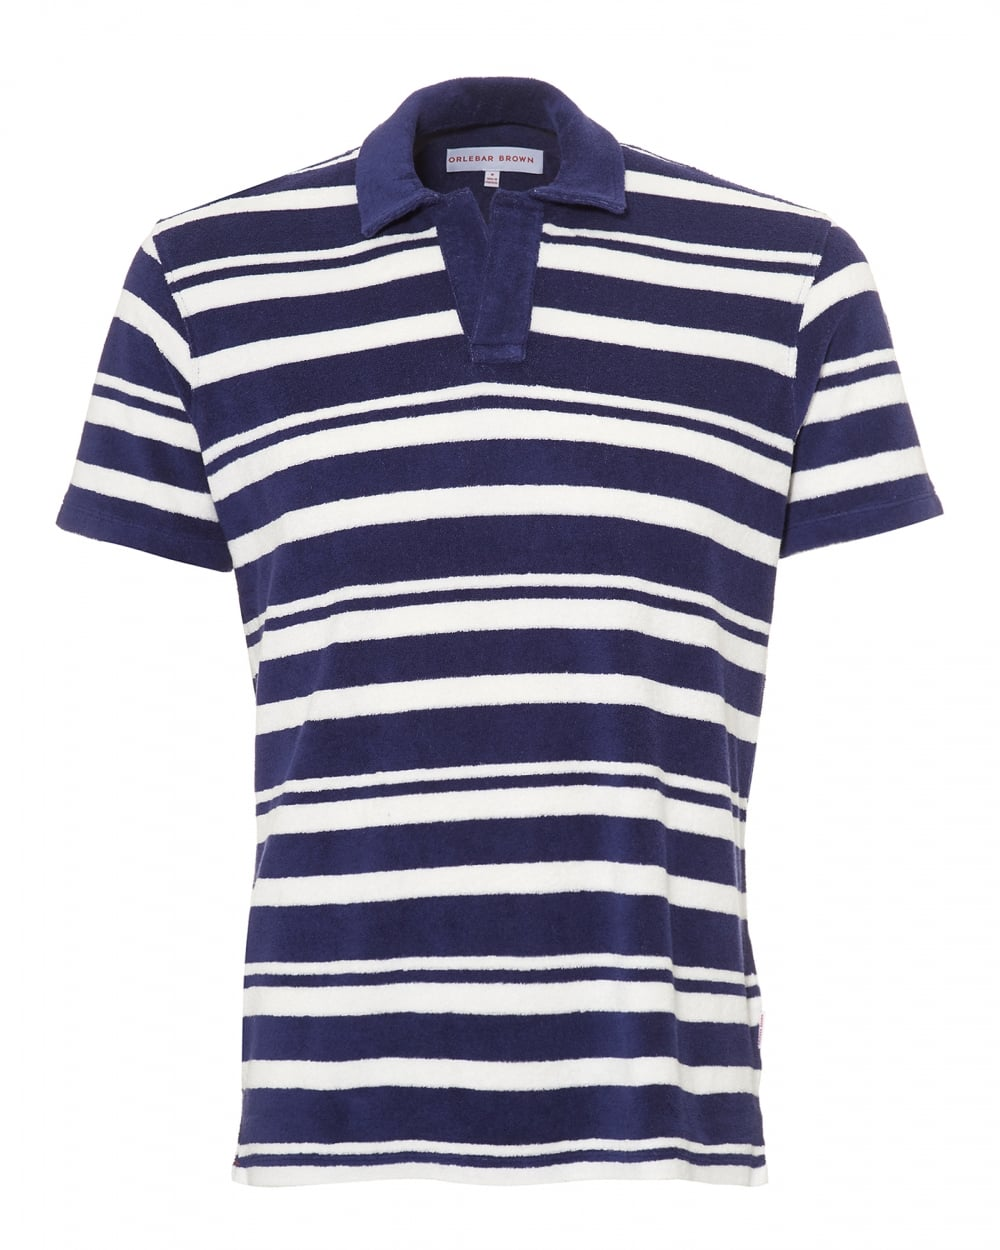 648fb6a29 Orlebar Brown Mens Terry Towelling Polo Shirt, Striped Navy White Polo